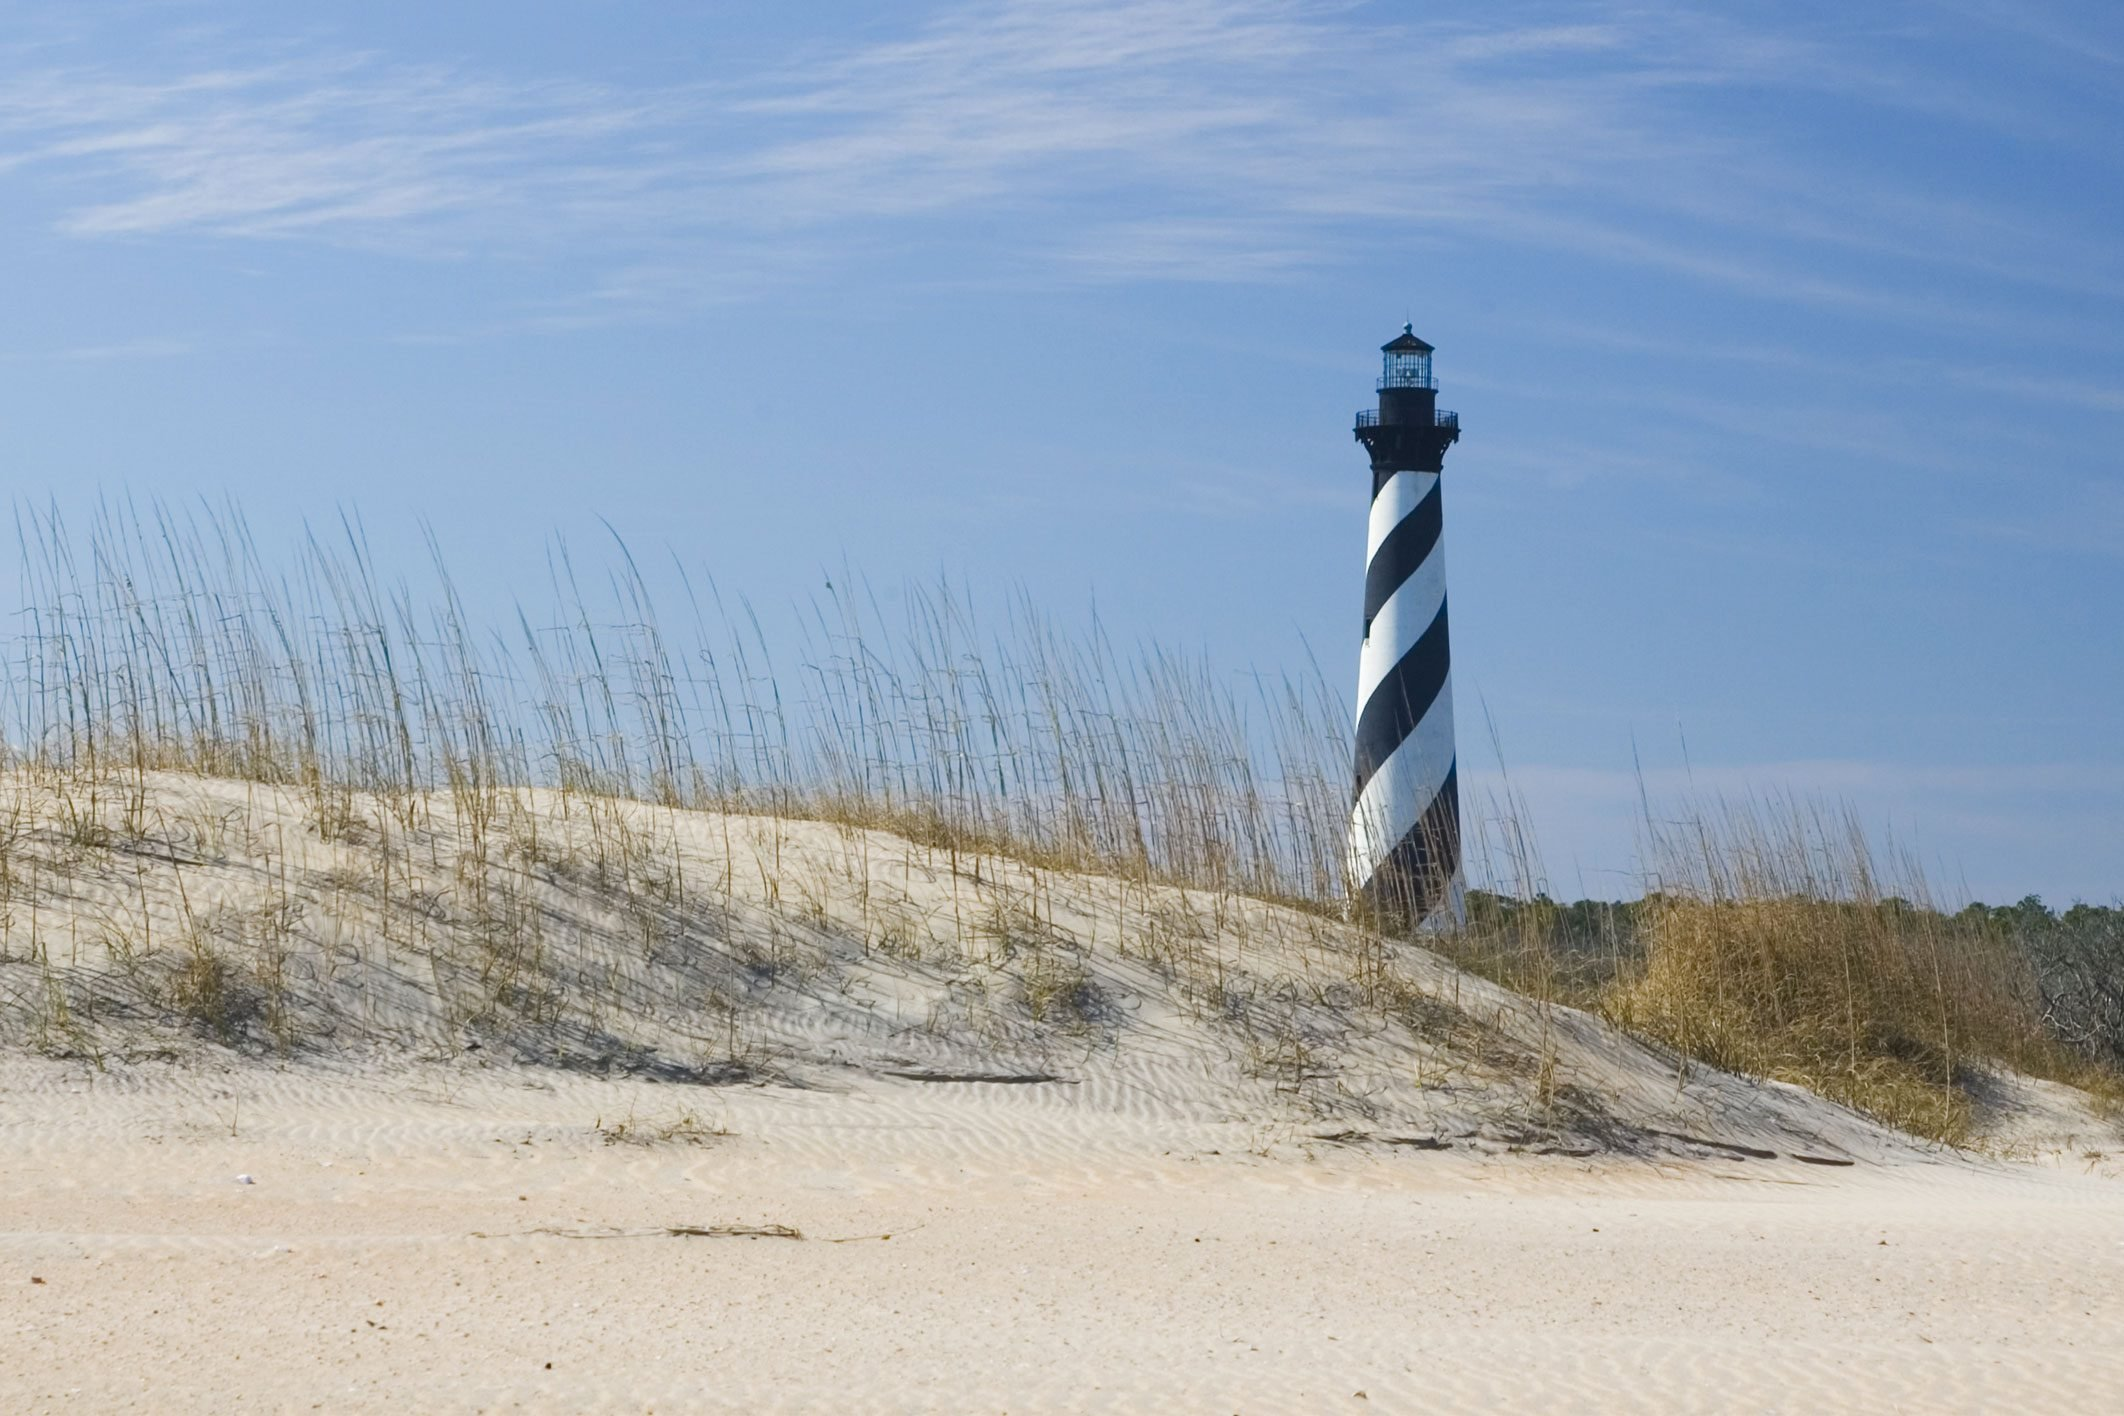 The Hatteras Lighthouse in North Carolina stands back on the beach behind the dunes.